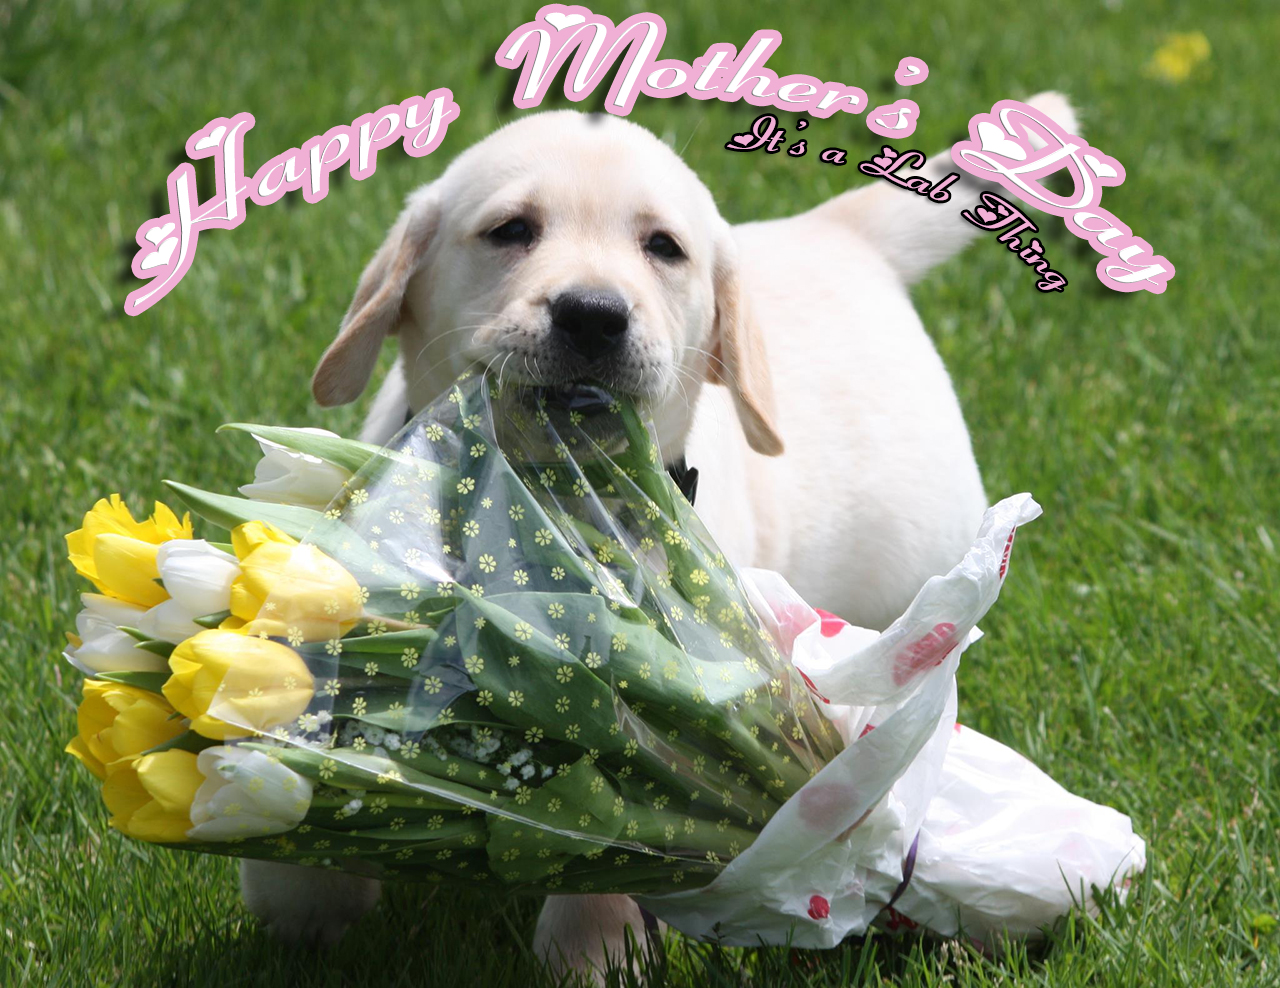 its a lab thing Marriage Puppy labrador Mothers day